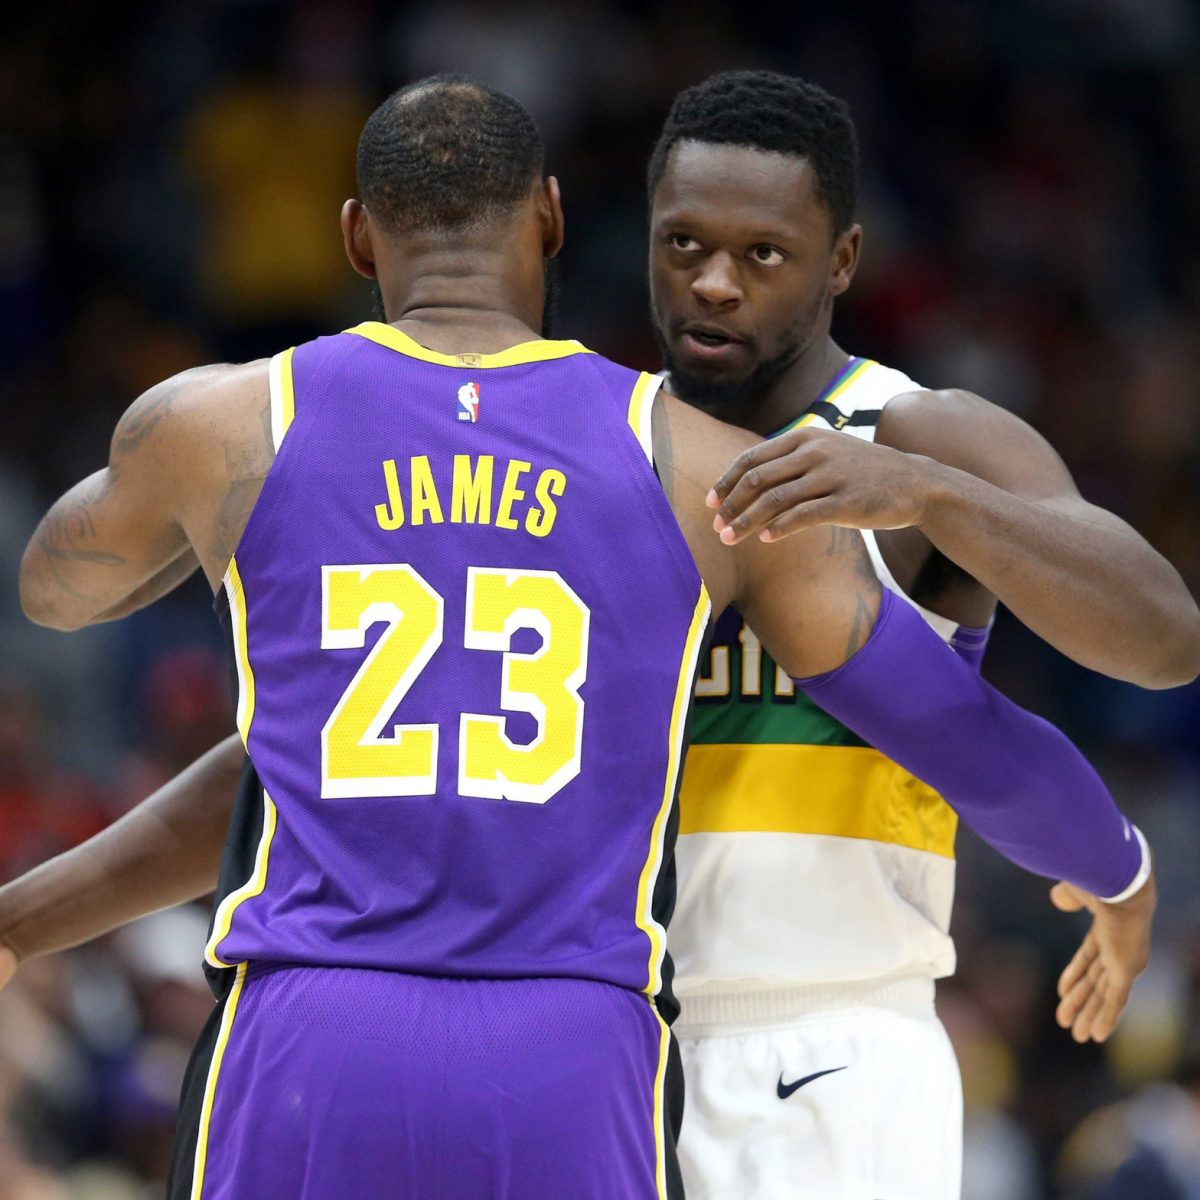 Nba Picks Nuggets And Lakers Game 7 Odds And Betting: New Orleans Pelicans Vs. Los Angeles Lakers Prediction